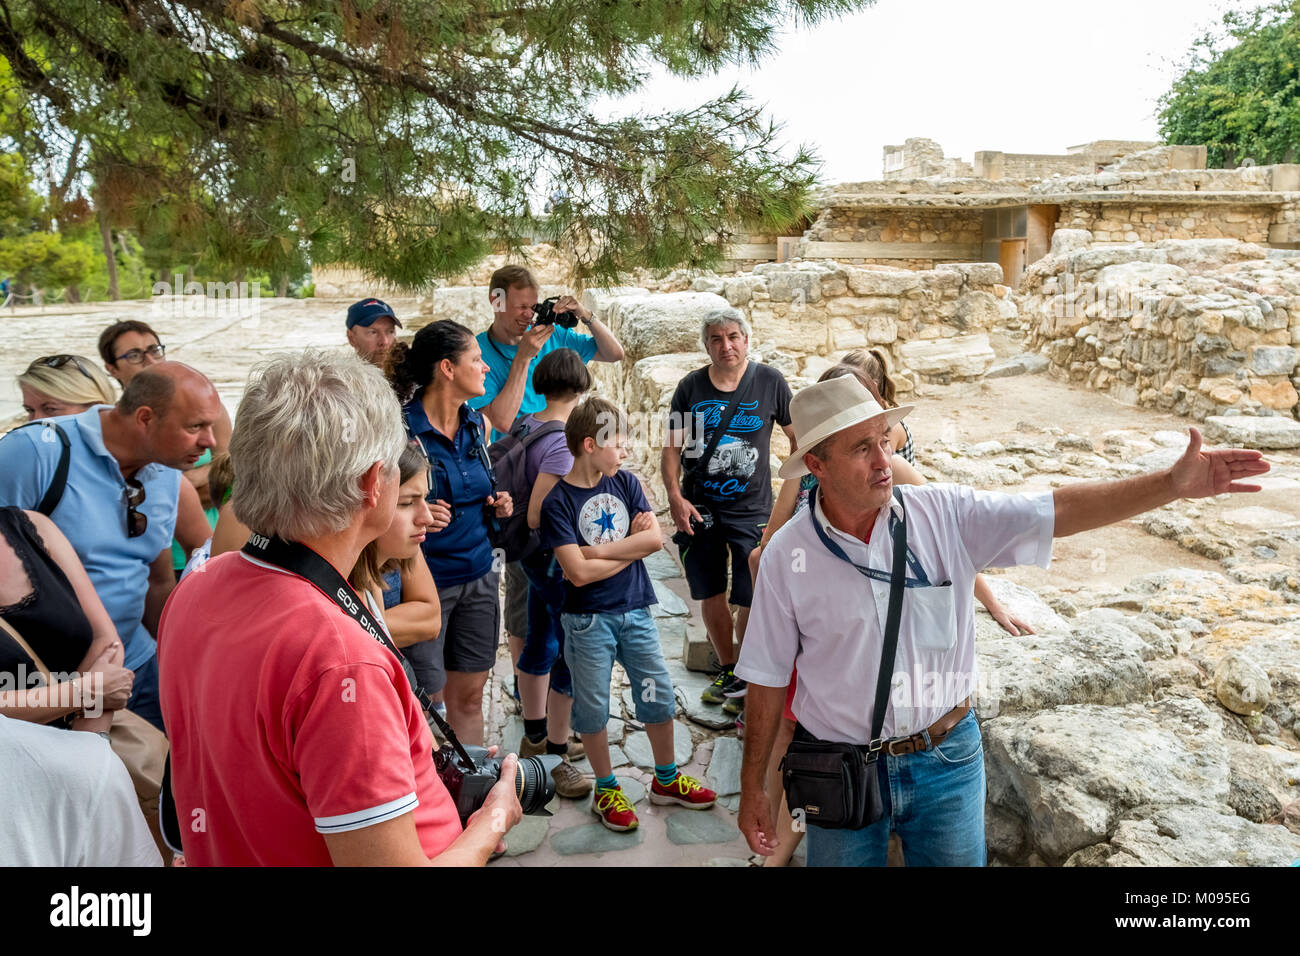 Guides before the Minoan temple complex of Knossos Palace of Knossos, ancient city of Knossos, Heraklion, Knossos, - Stock Image